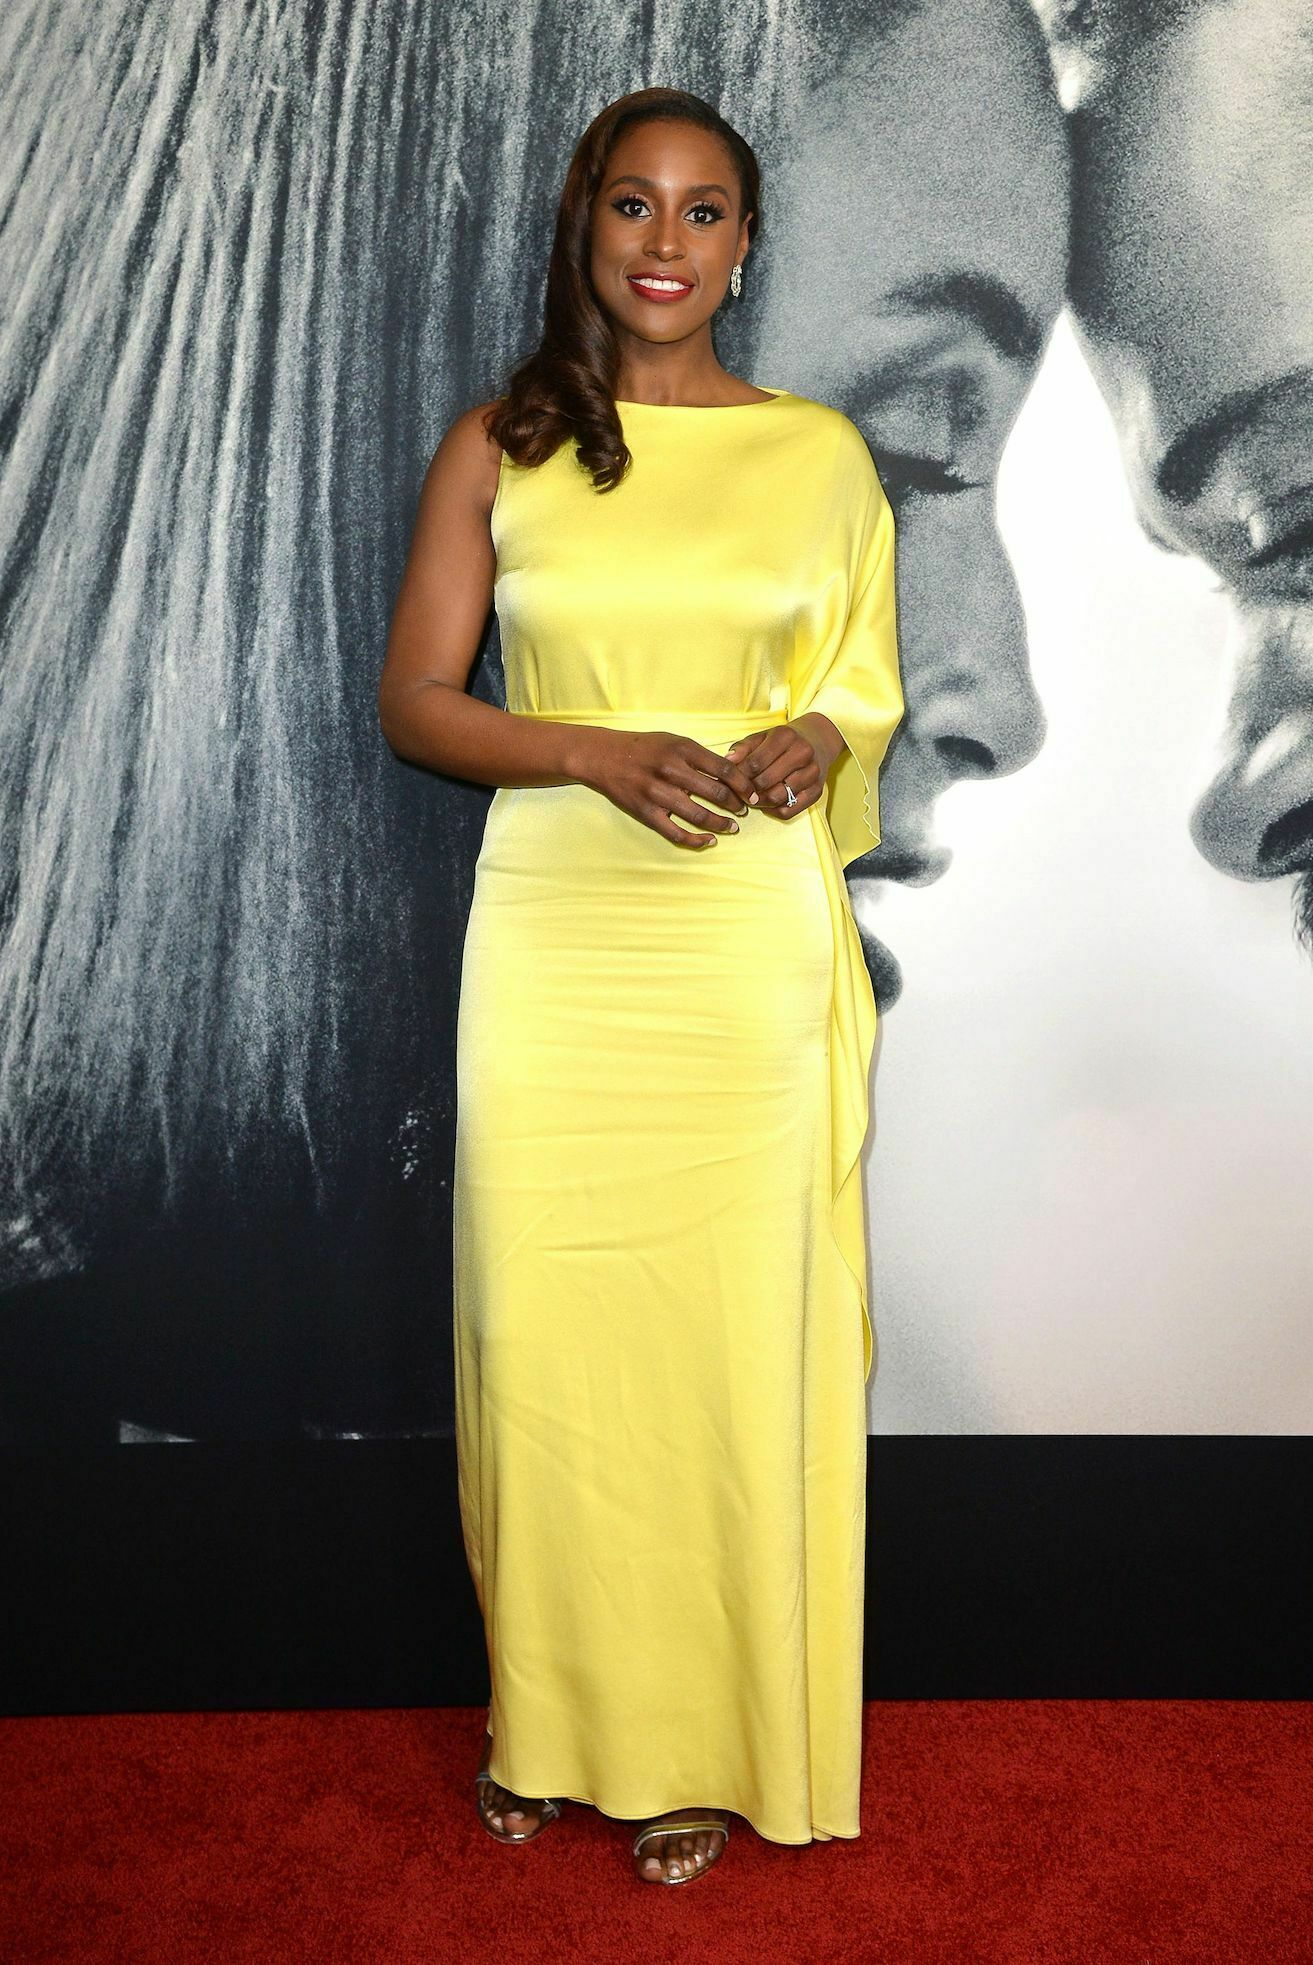 issa rae in yellow dress photo courtesy (gofugyourself)